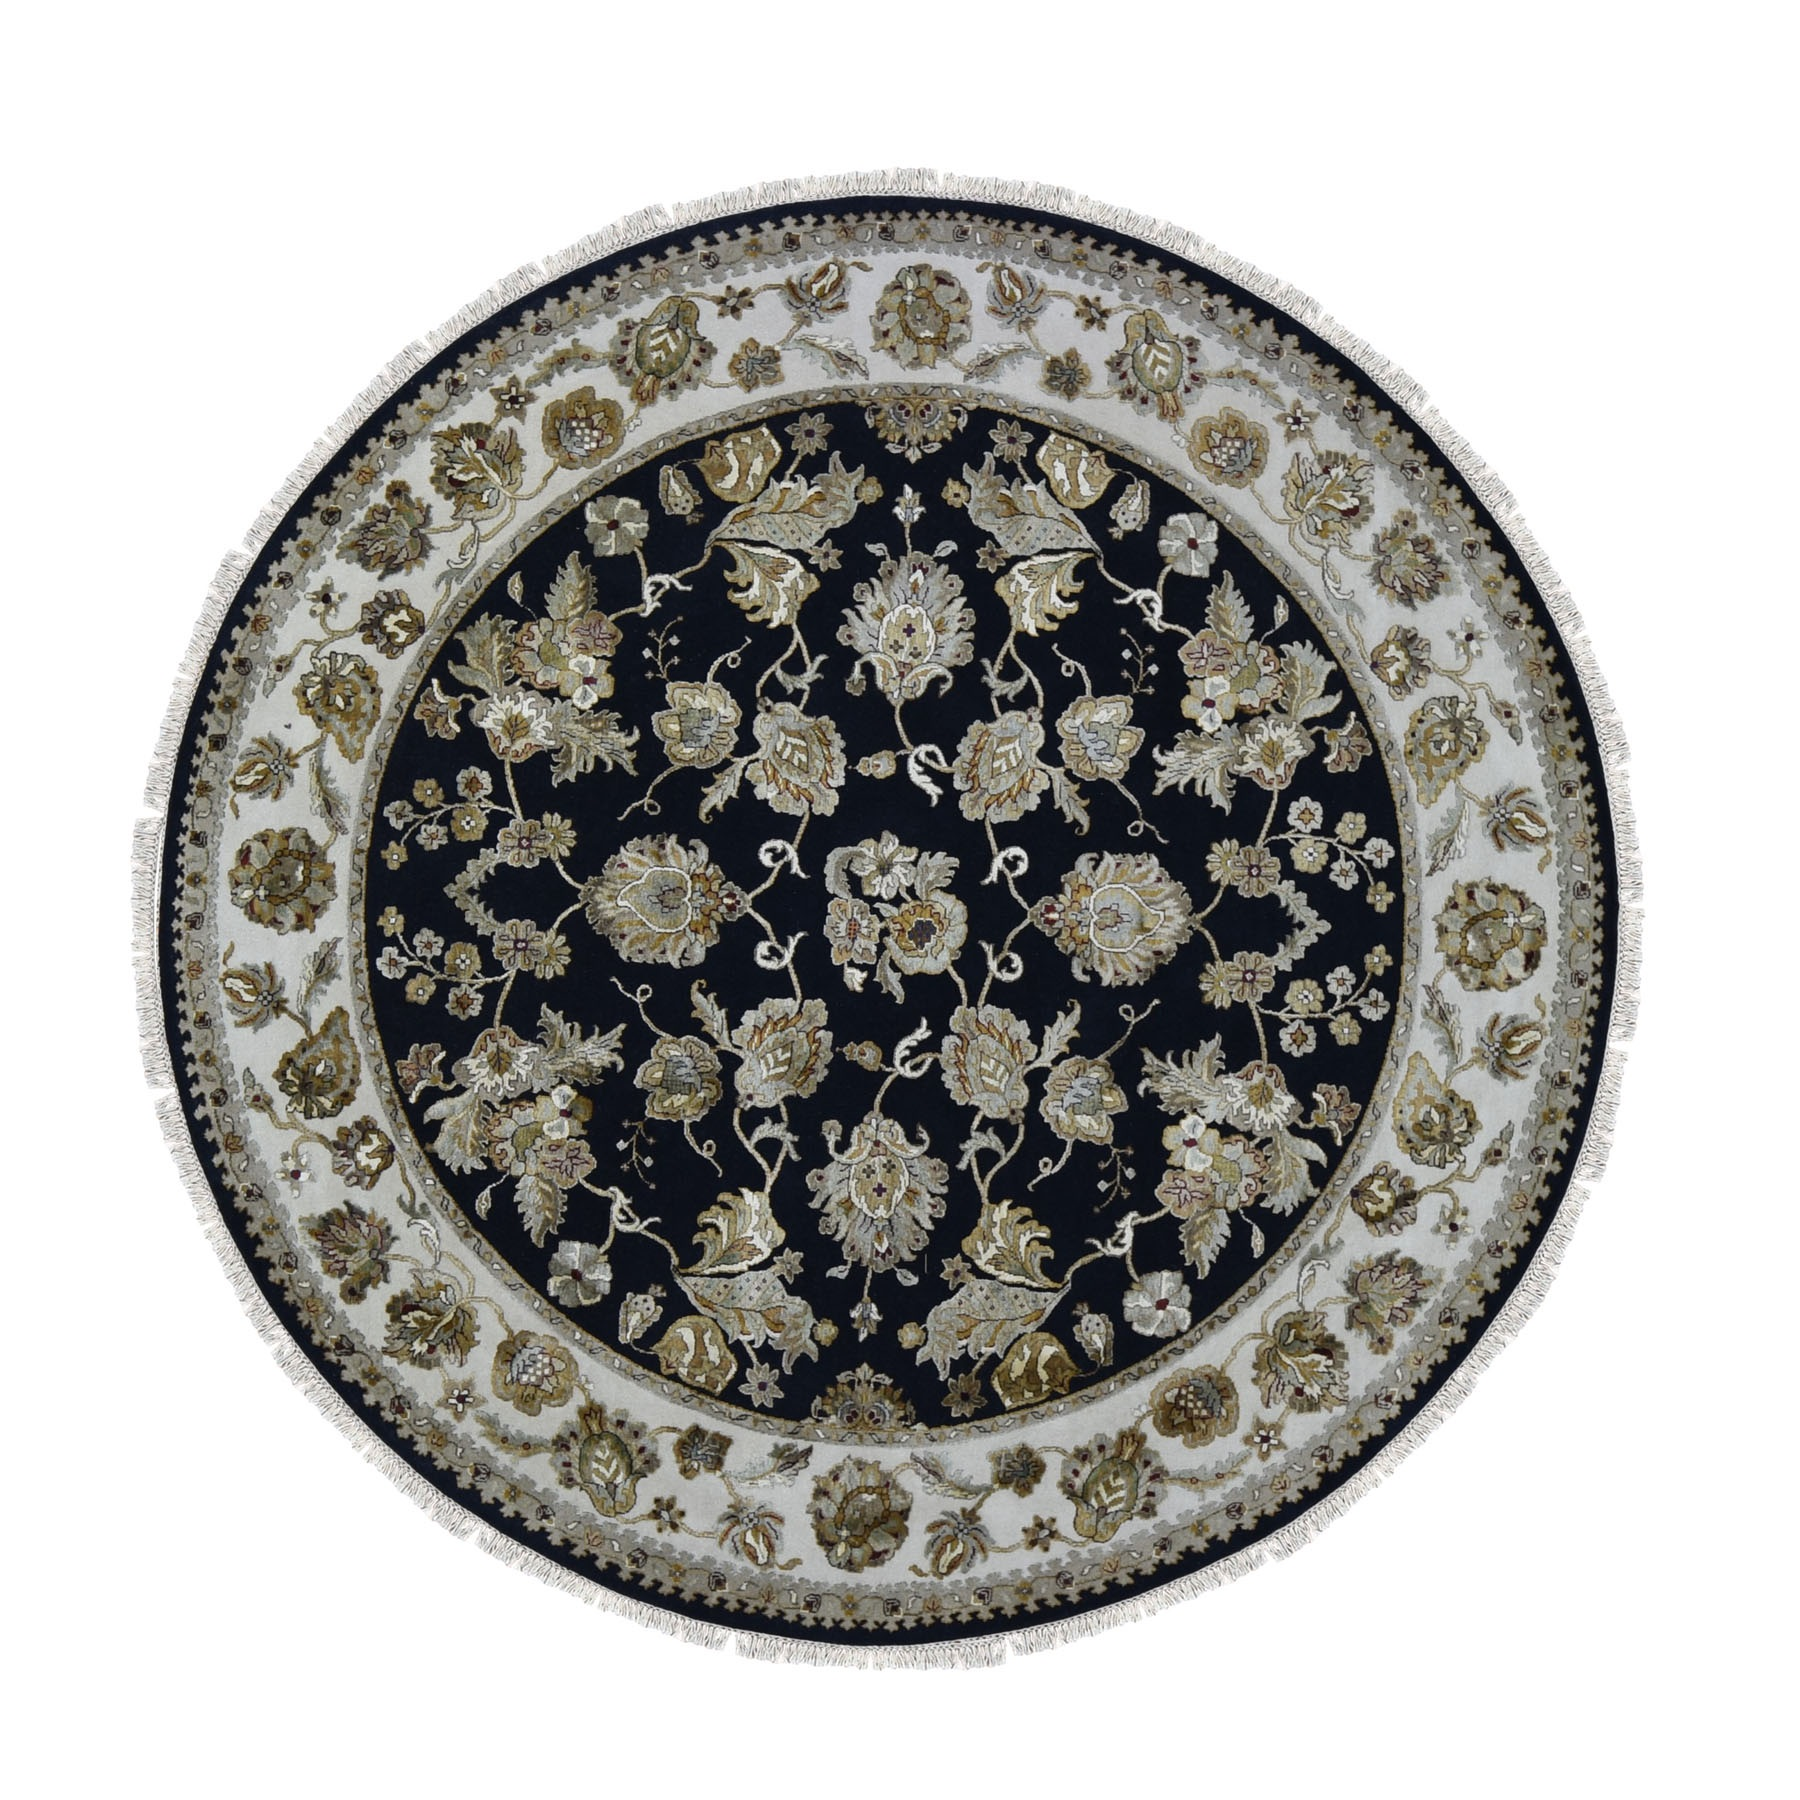 Pahlavi Collection Hand Knotted Black Rug No: 01118034